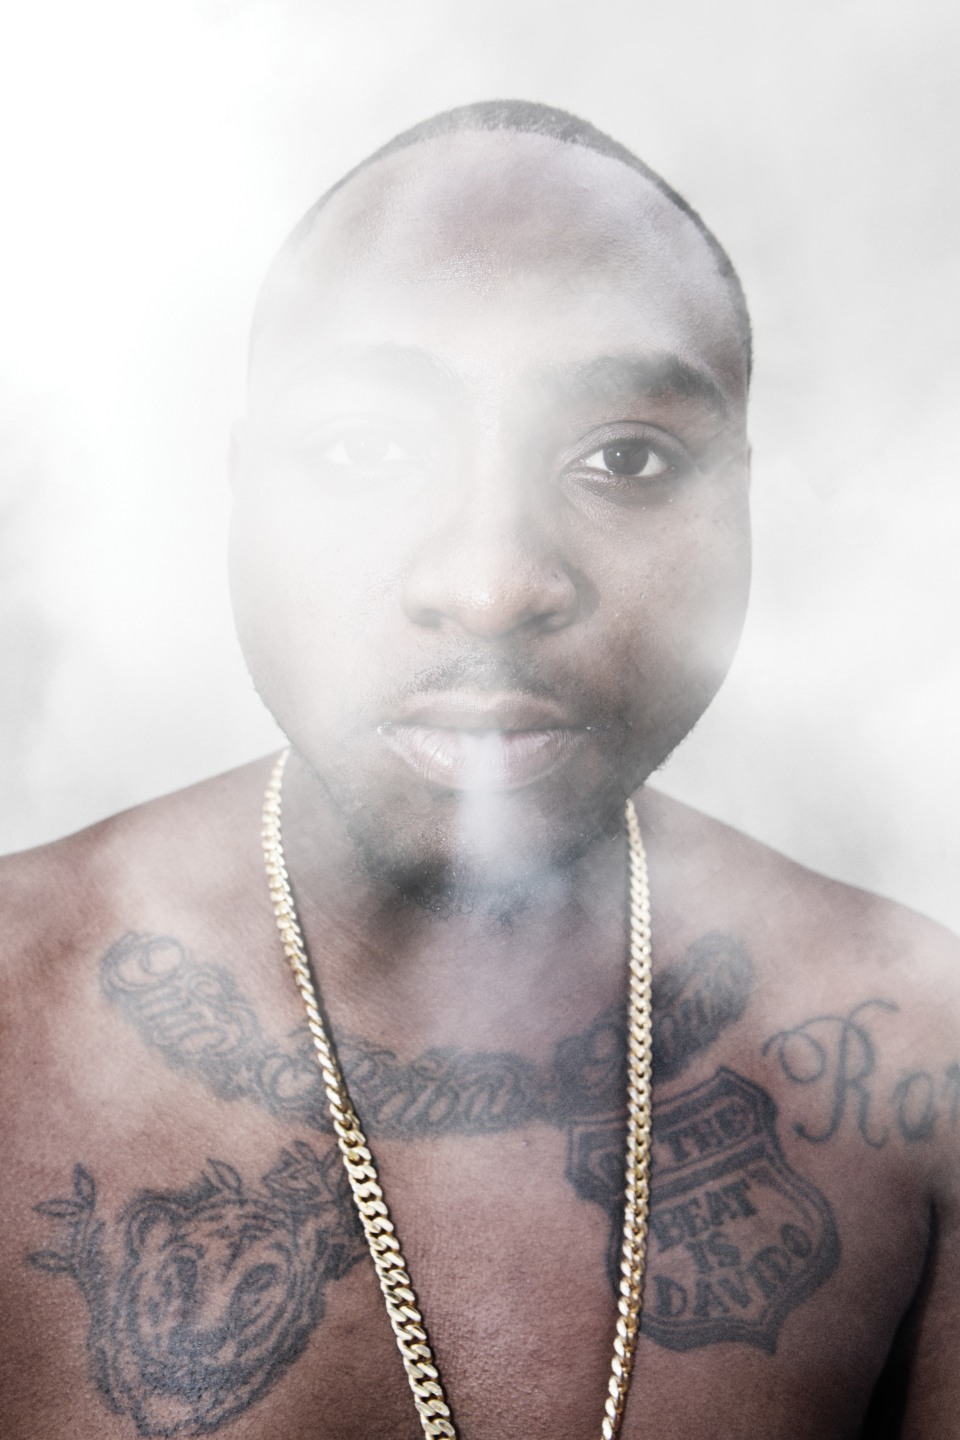 tmp_25950-davido-cover-story-interview1517094298